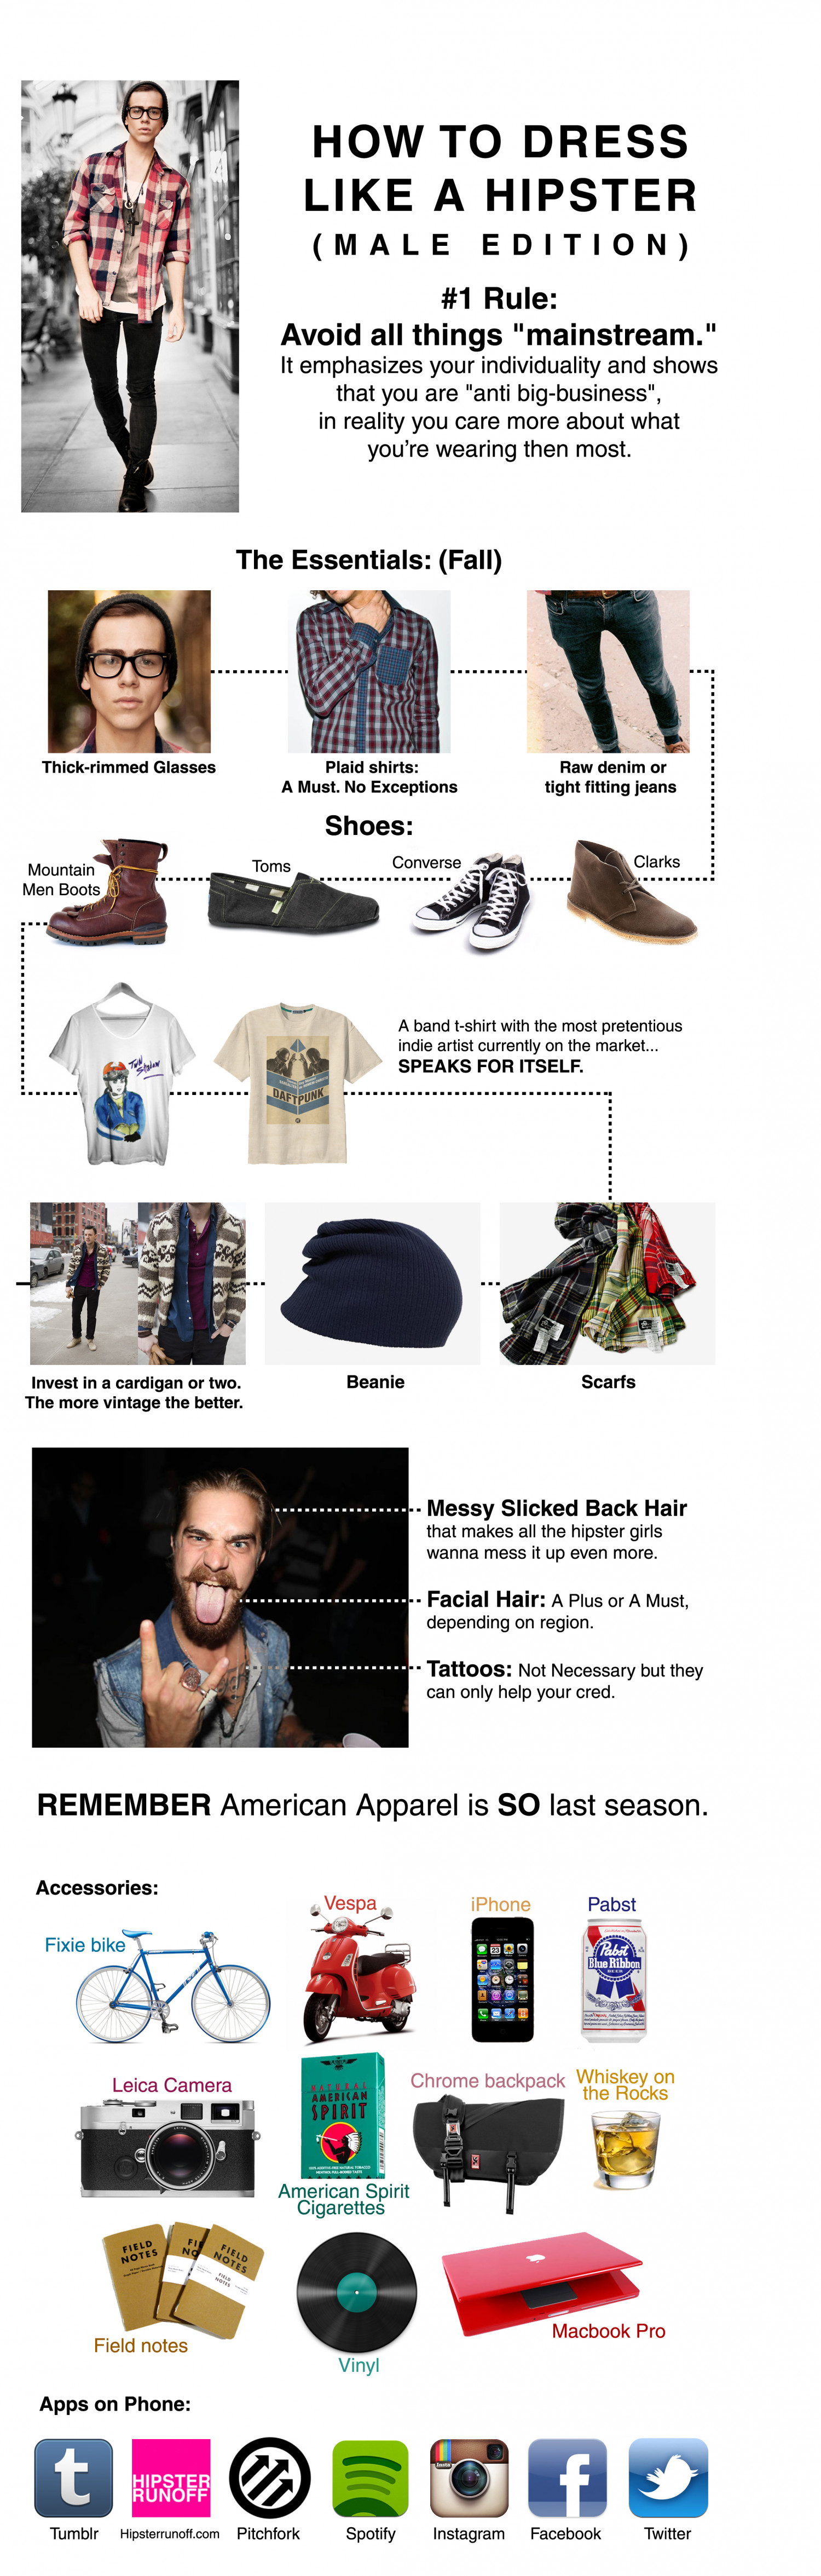 How to Dress Like a Hipster Infographic